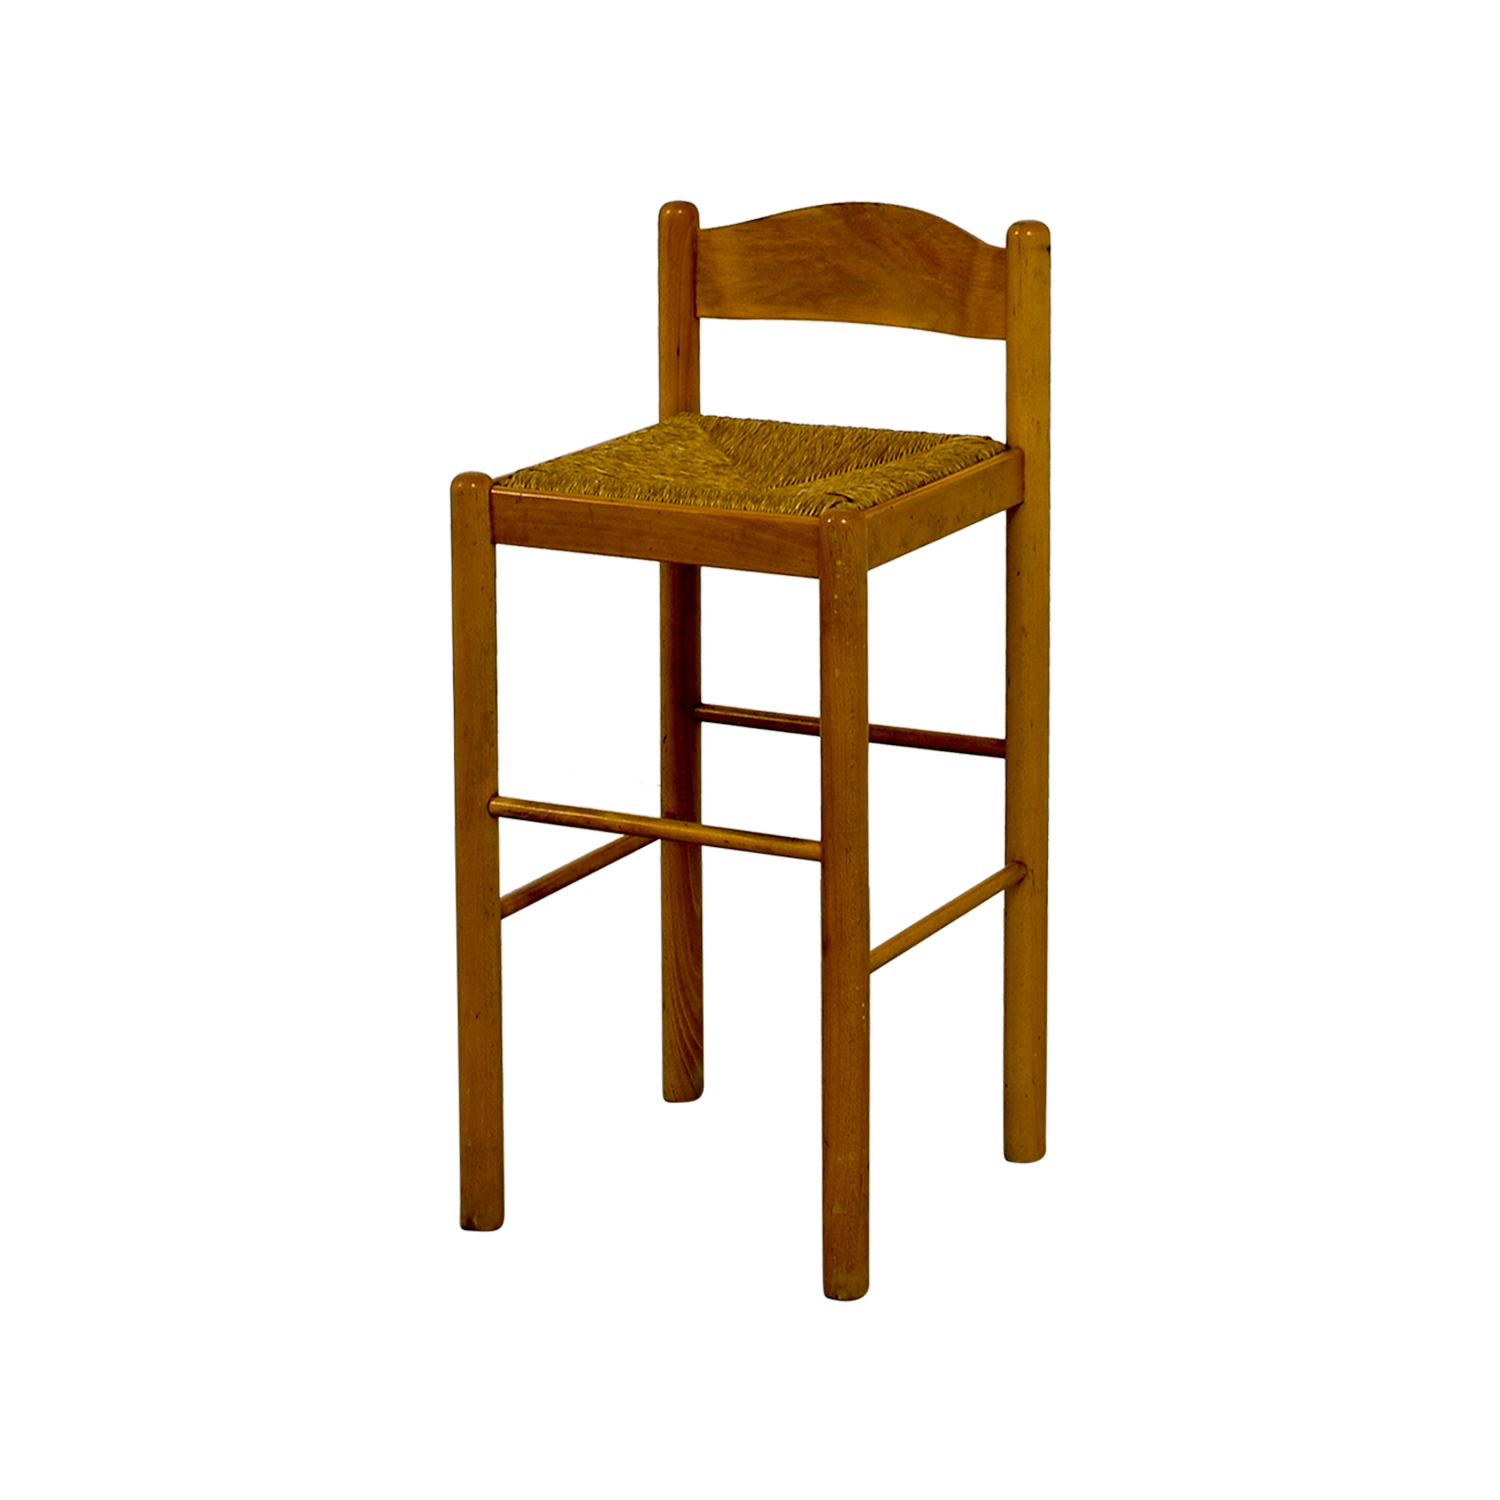 Wicker Wooden Stool sale